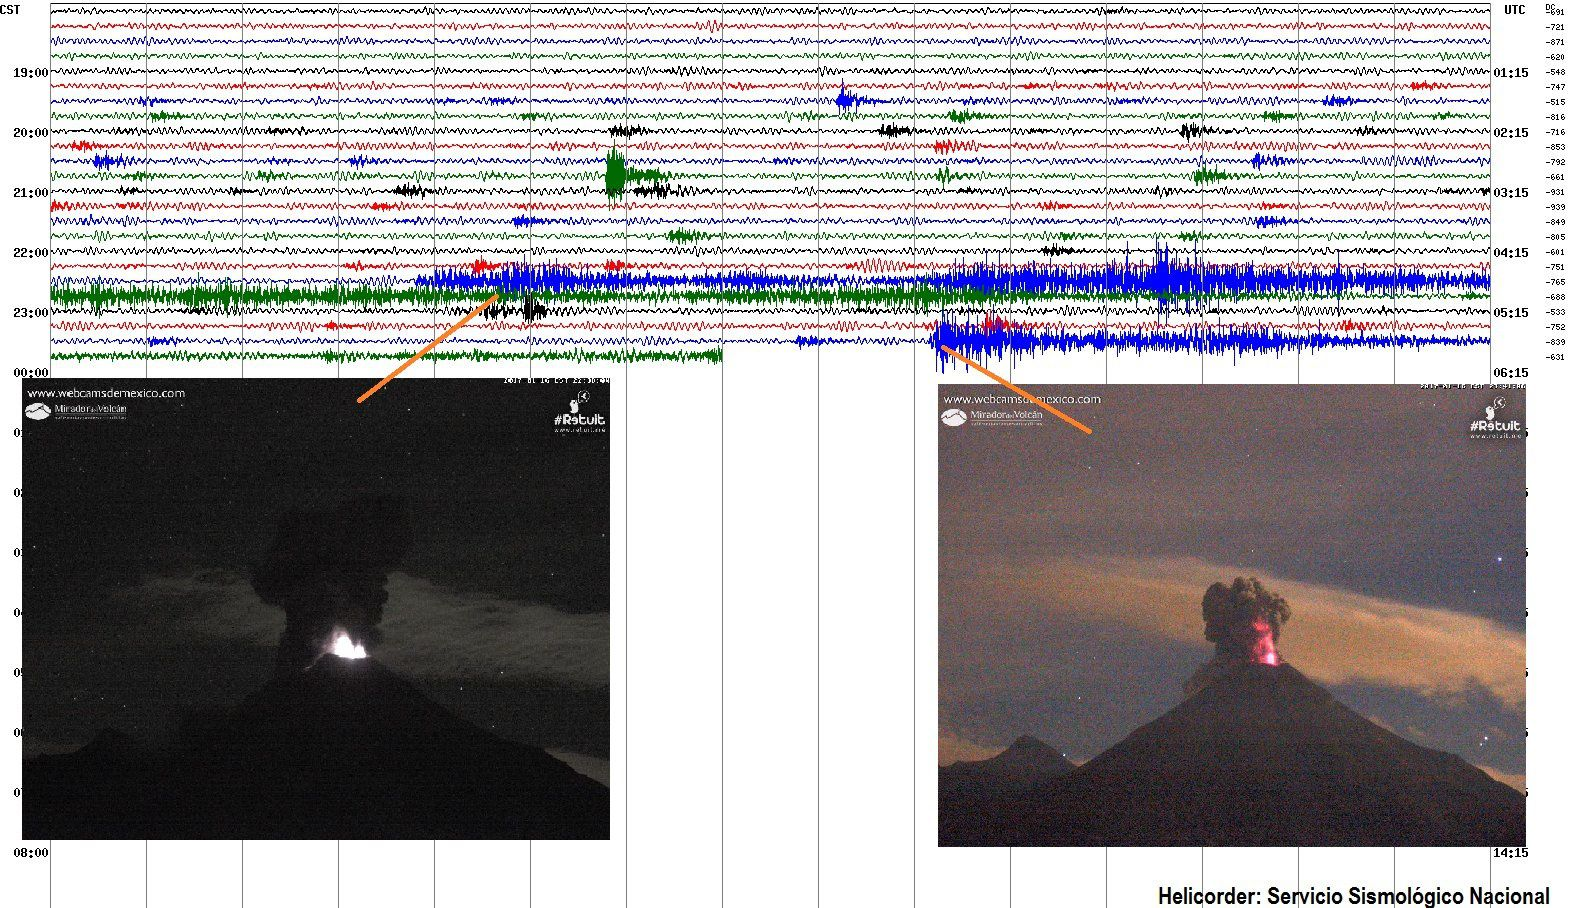 Colima 2017.01.16 - both ash emissions of the night, non-explosive, and accompanied by tremor - Doc. Colima Volcano / Twitter